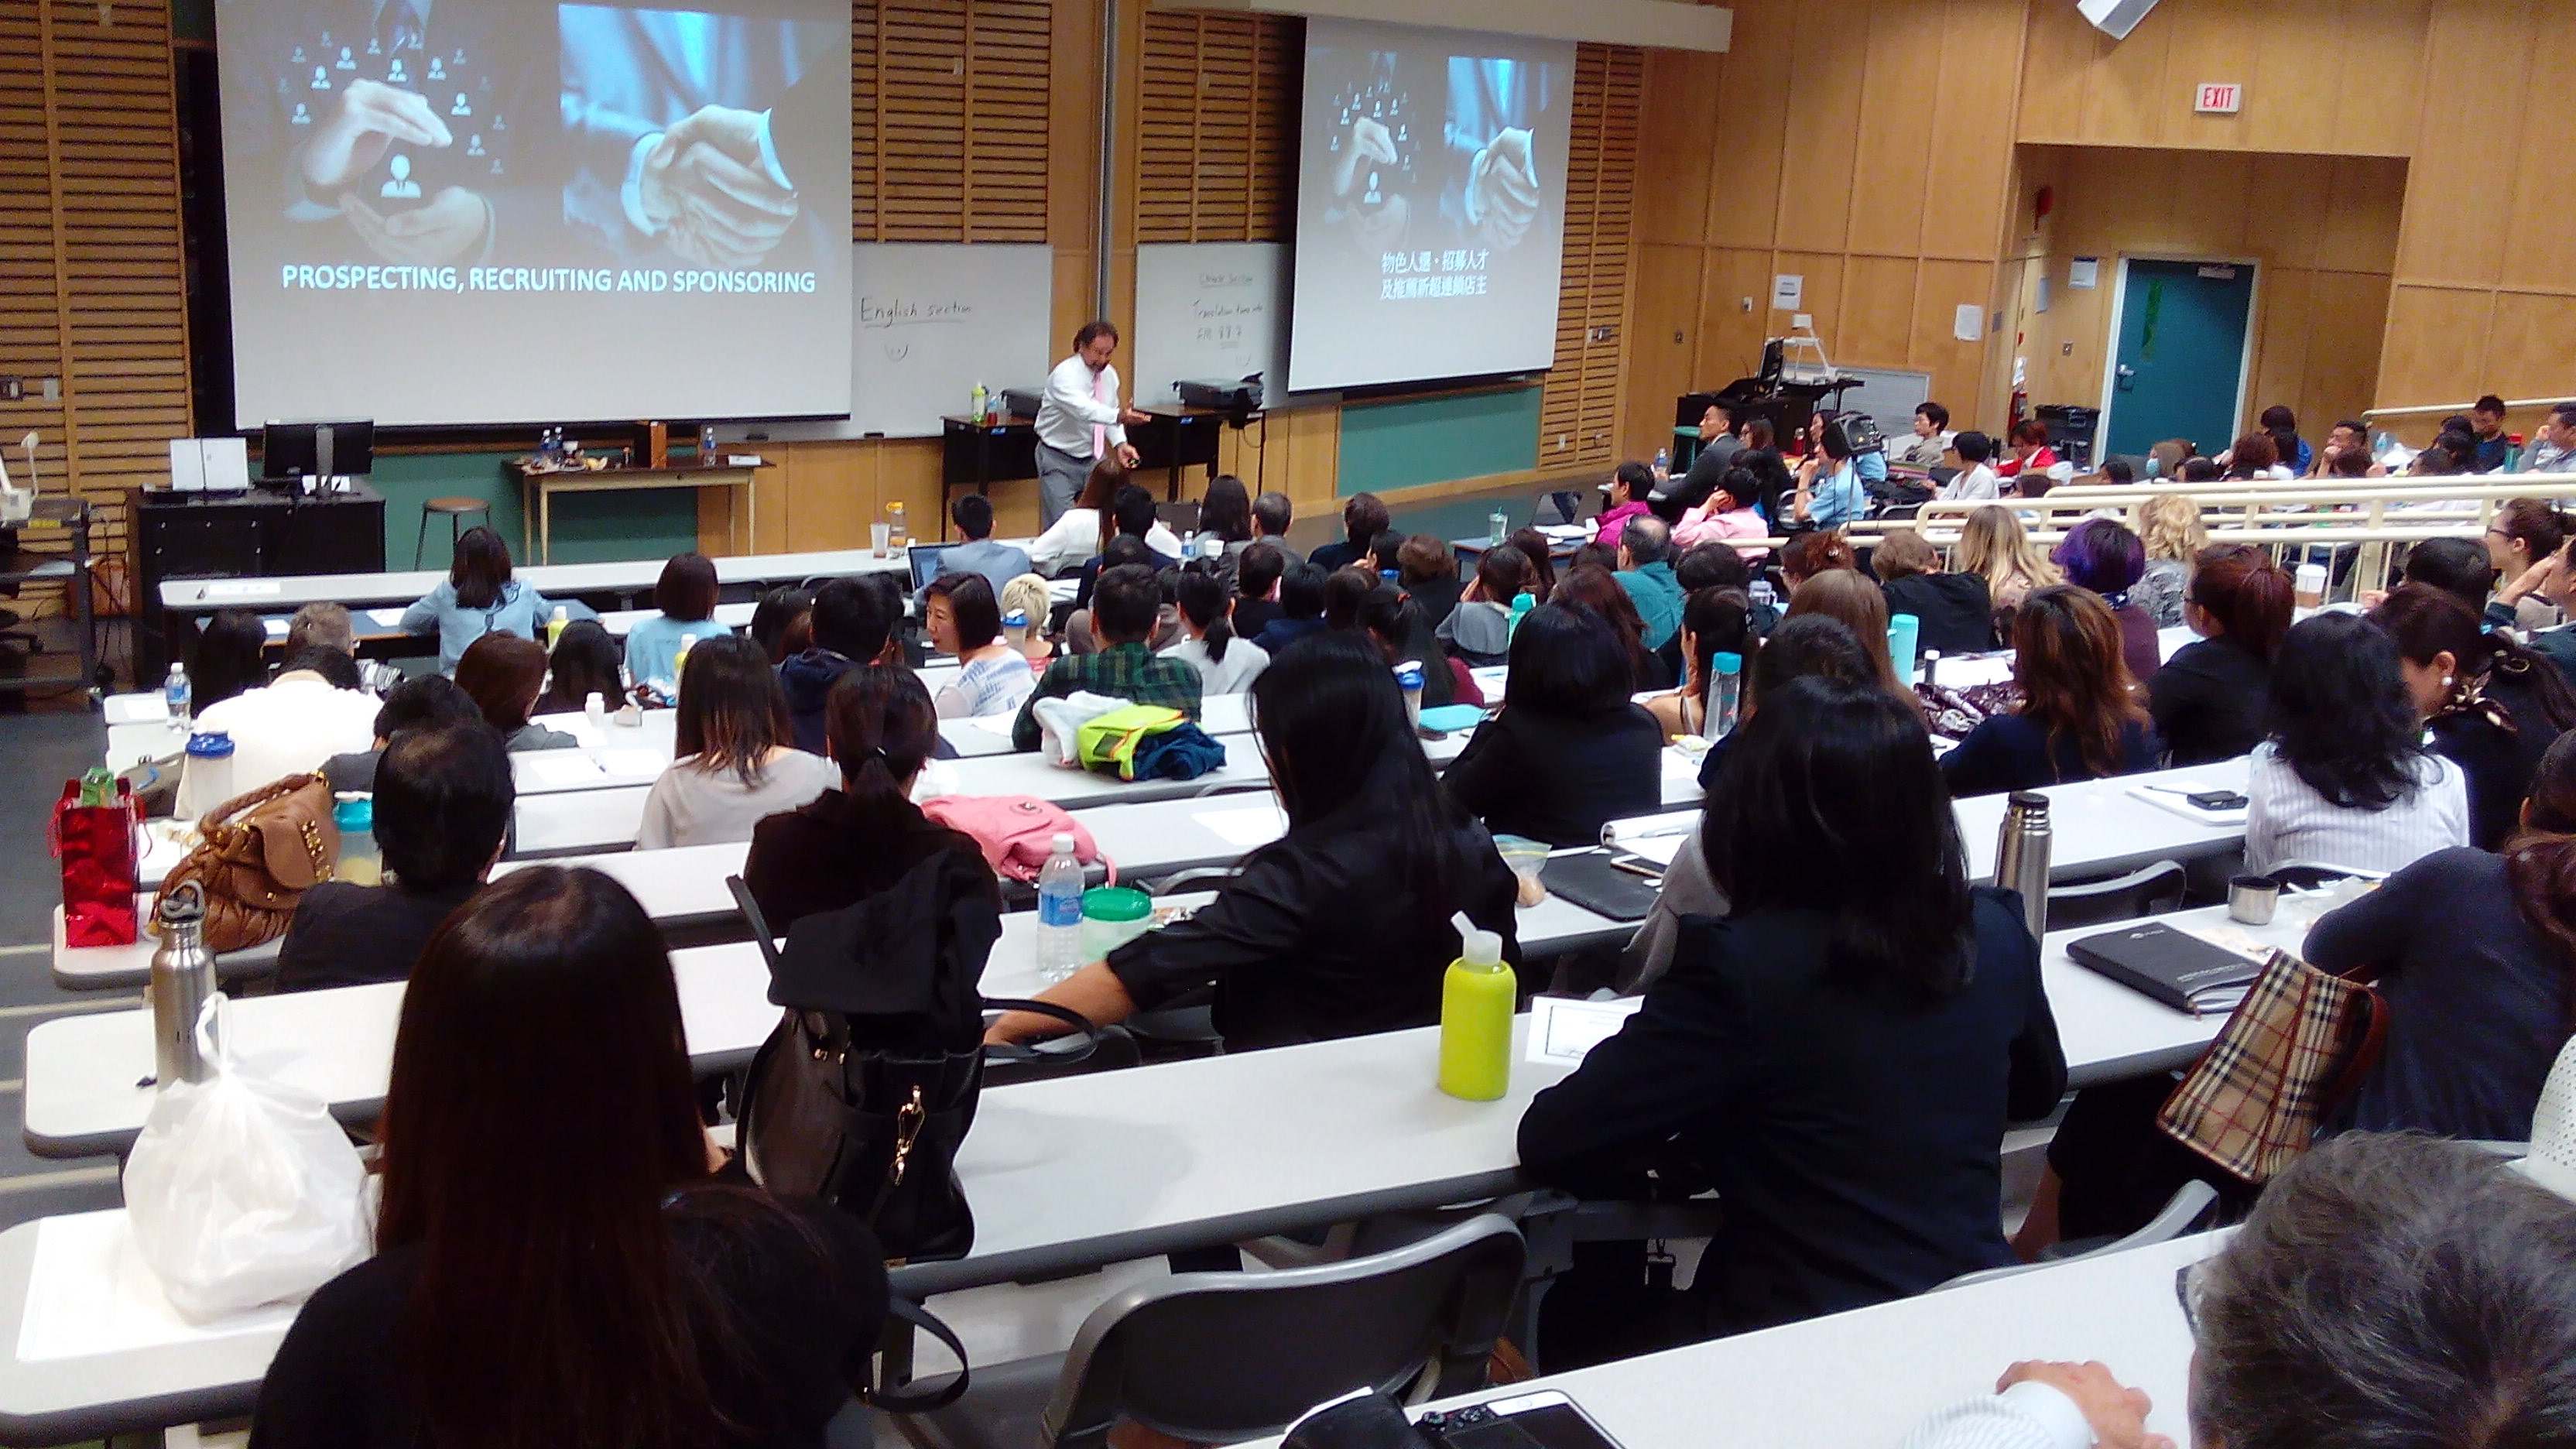 Chinese slides and simul interpretation were done by UFO Volunteers for the Business Building Seminar